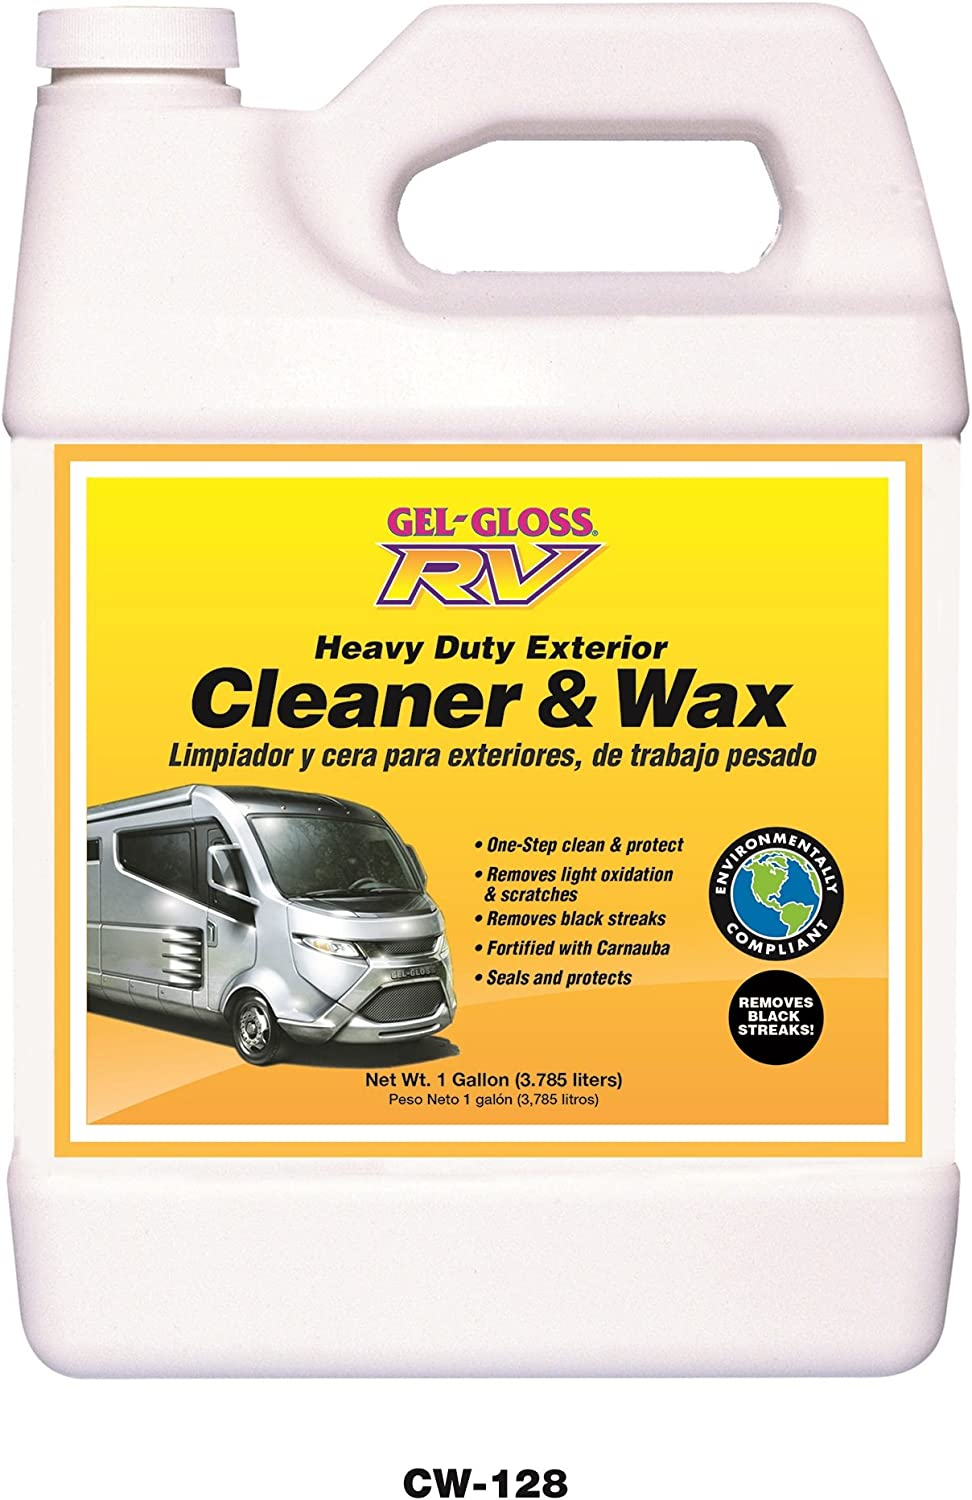 TR Industries CW-128 Gel-Gloss Special price for a limited time RV and Carnauba Max 67% OFF Cleaner with Wax